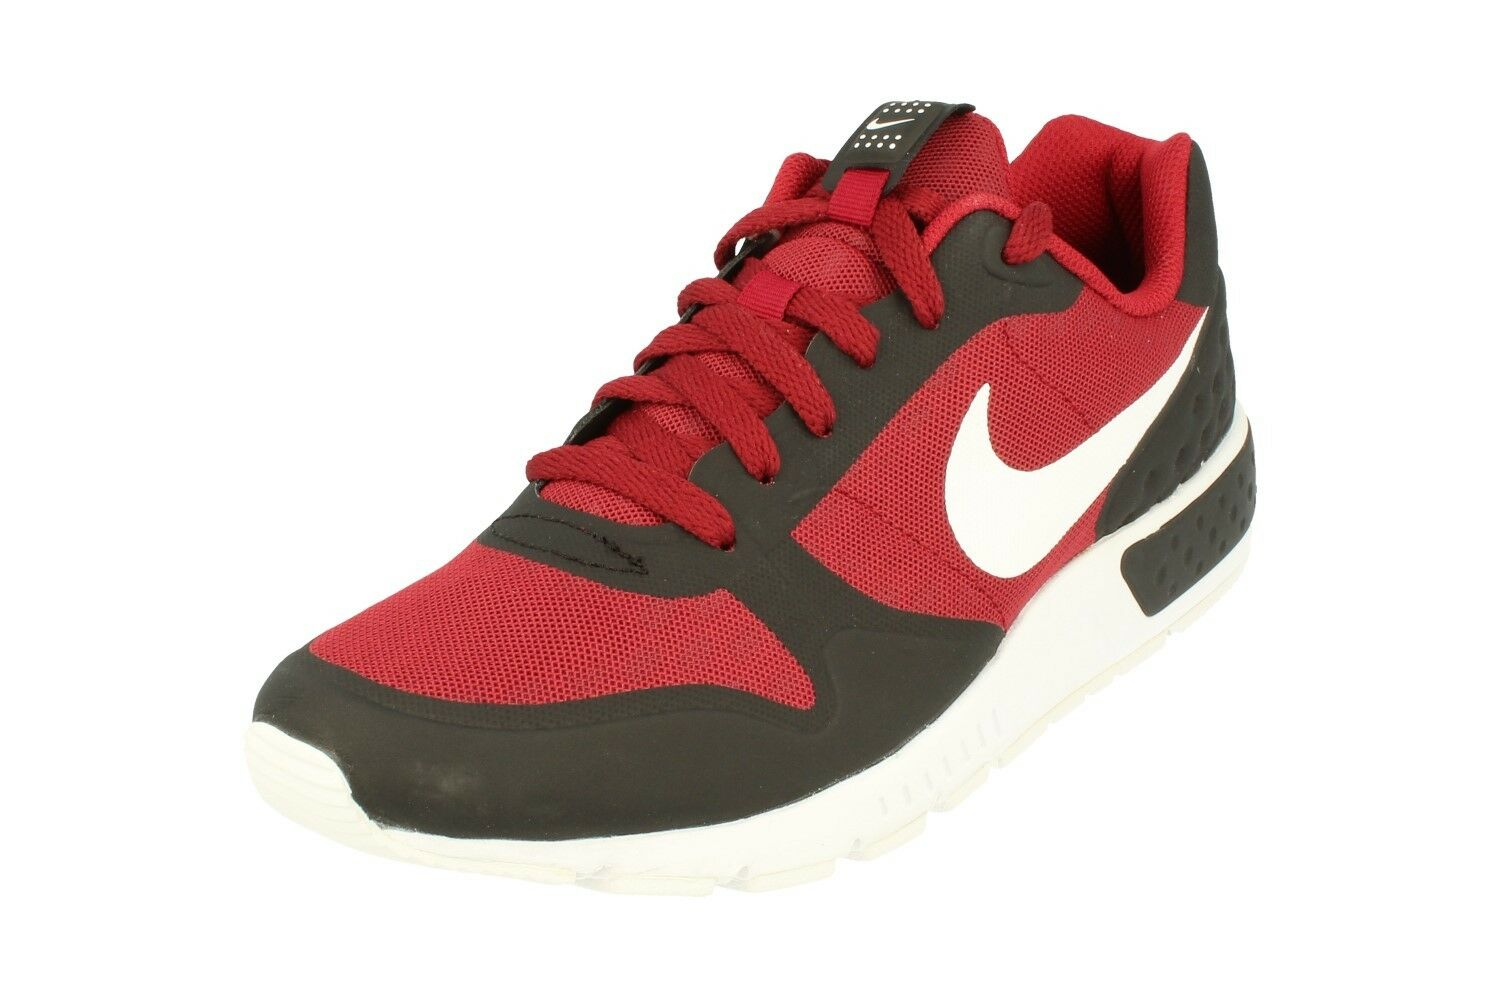 Nike Nightgazer Lw Se Mens Running Trainers 902818 Sneakers shoes 601